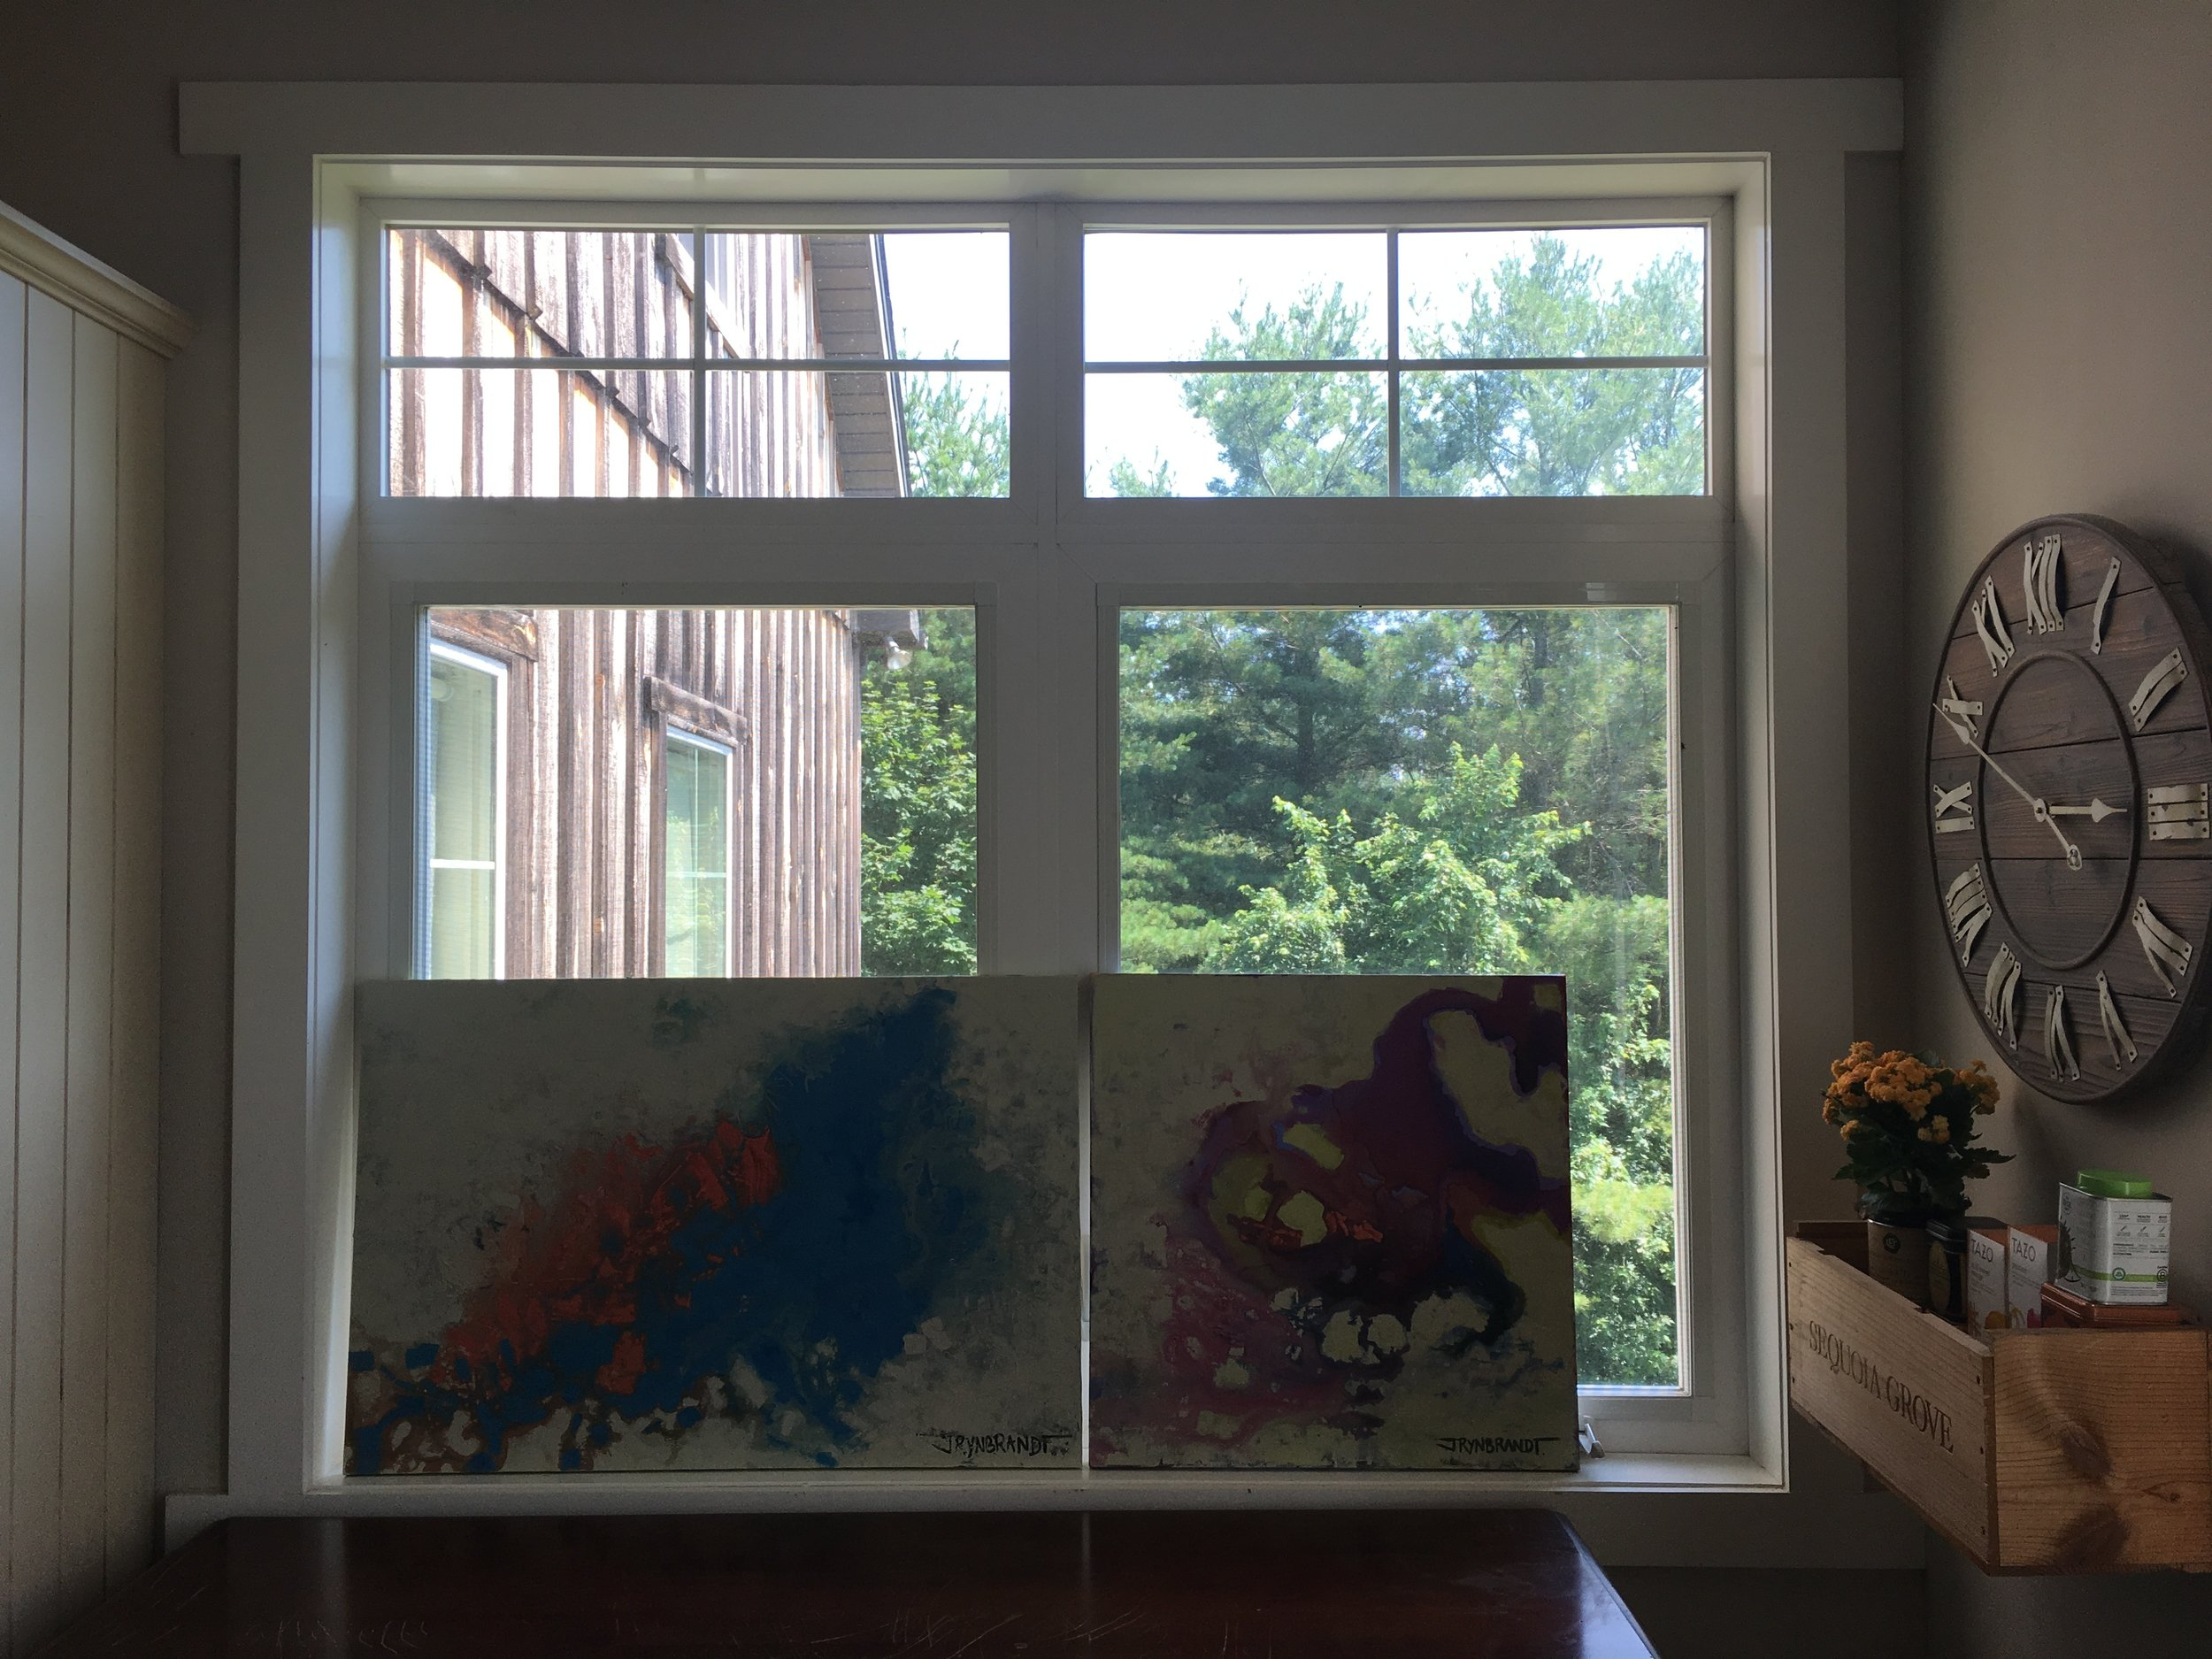 Here are this week's offerings in a six foot wide kitchen window.